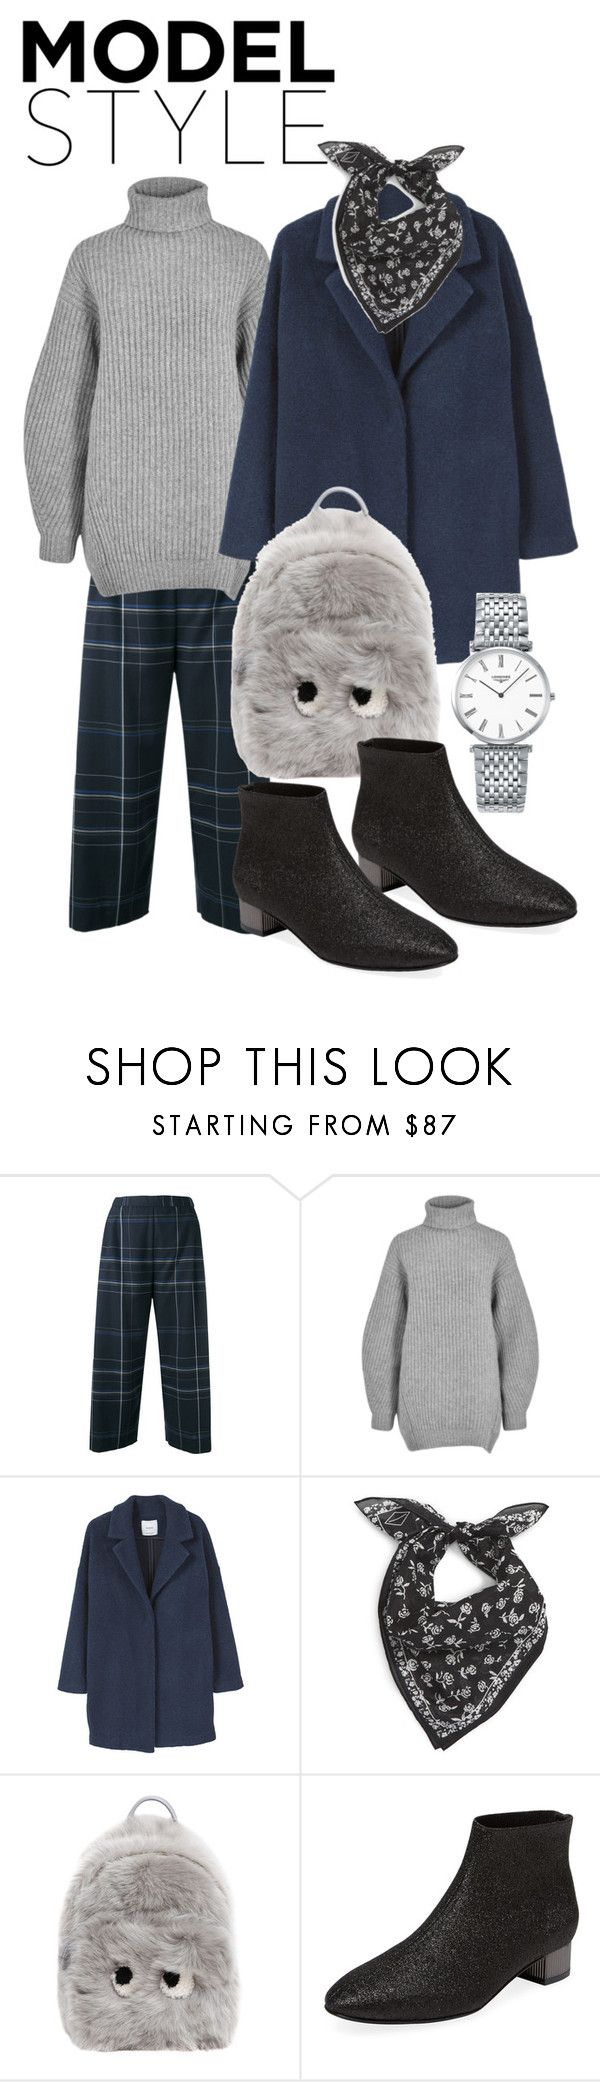 """MODEL STYLE-925"" by ckuz ❤ liked on Polyvore featuring Stephan Schneider, Acne Studios, MANGO, rag & bone, Anya Hindmarch, Robert Clergerie and Longines"